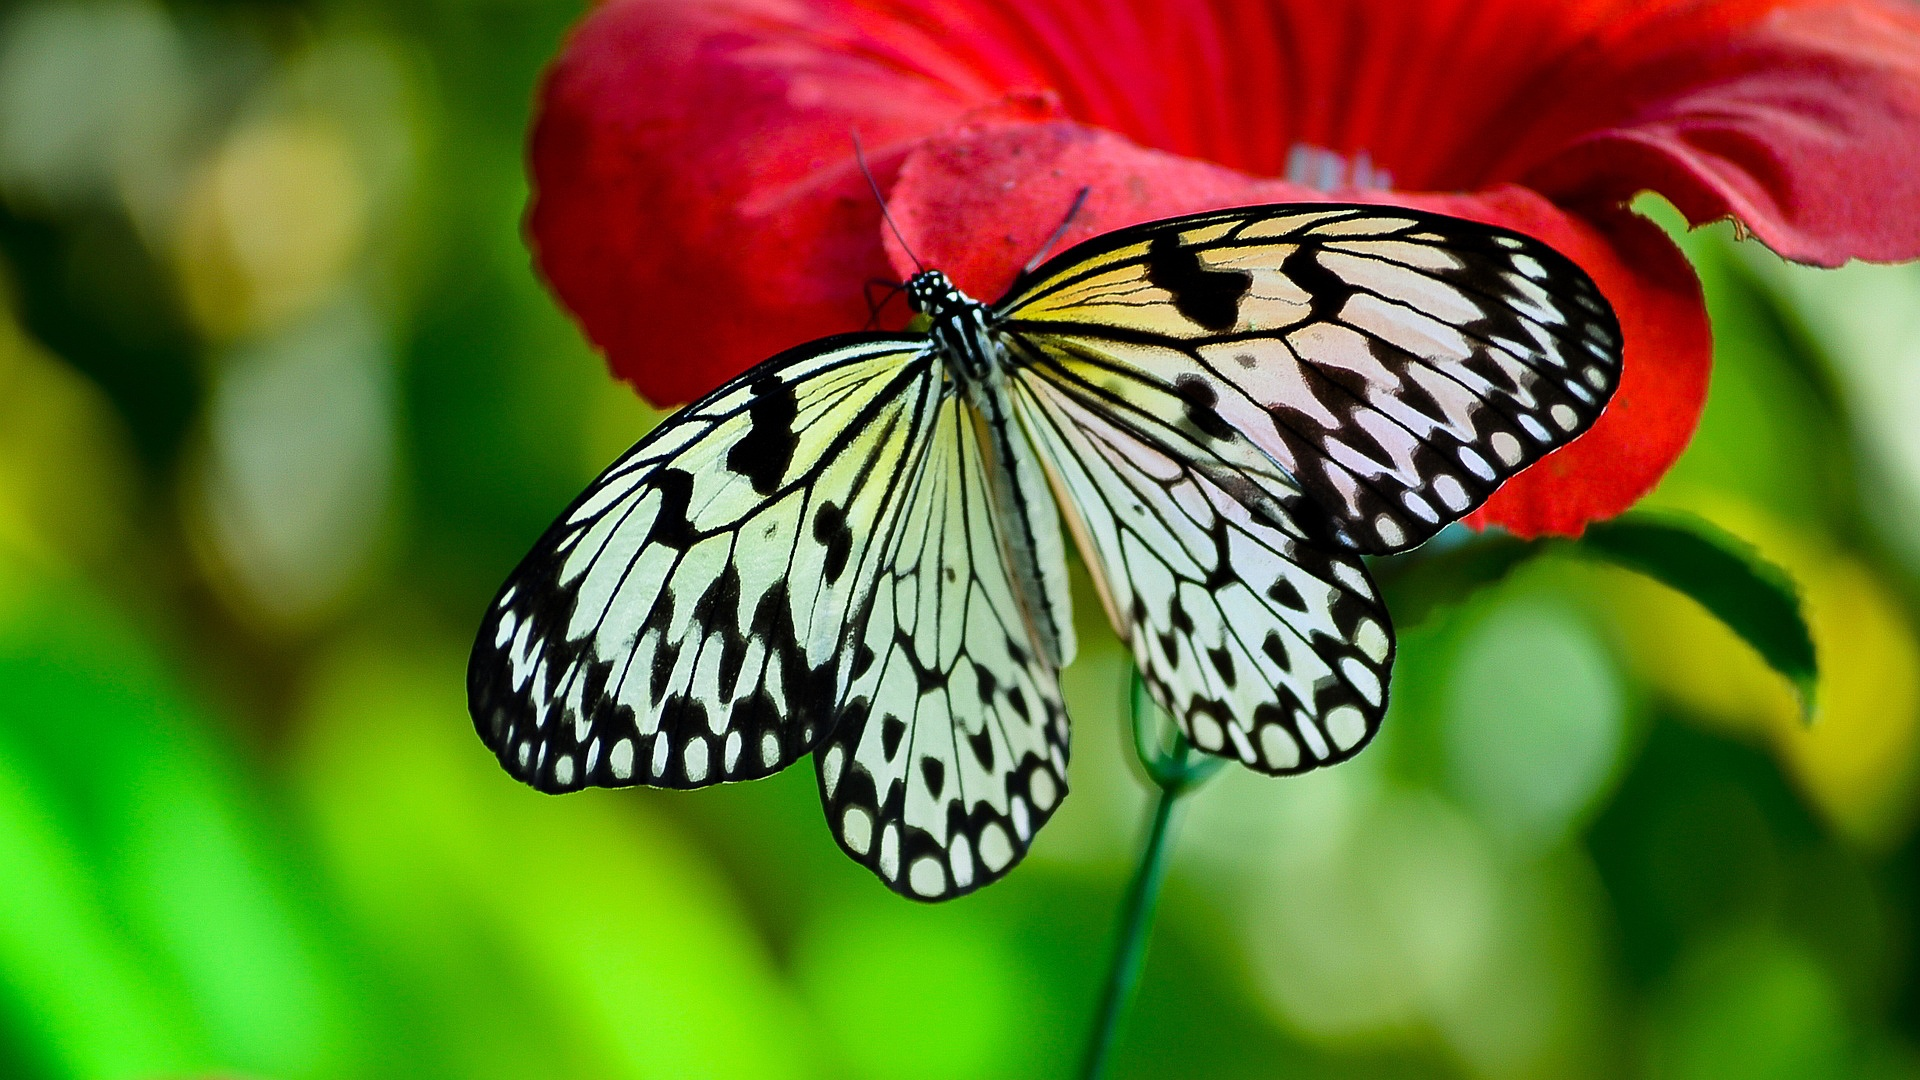 Black And White Butterfly Image Id 289607 Image Abyss